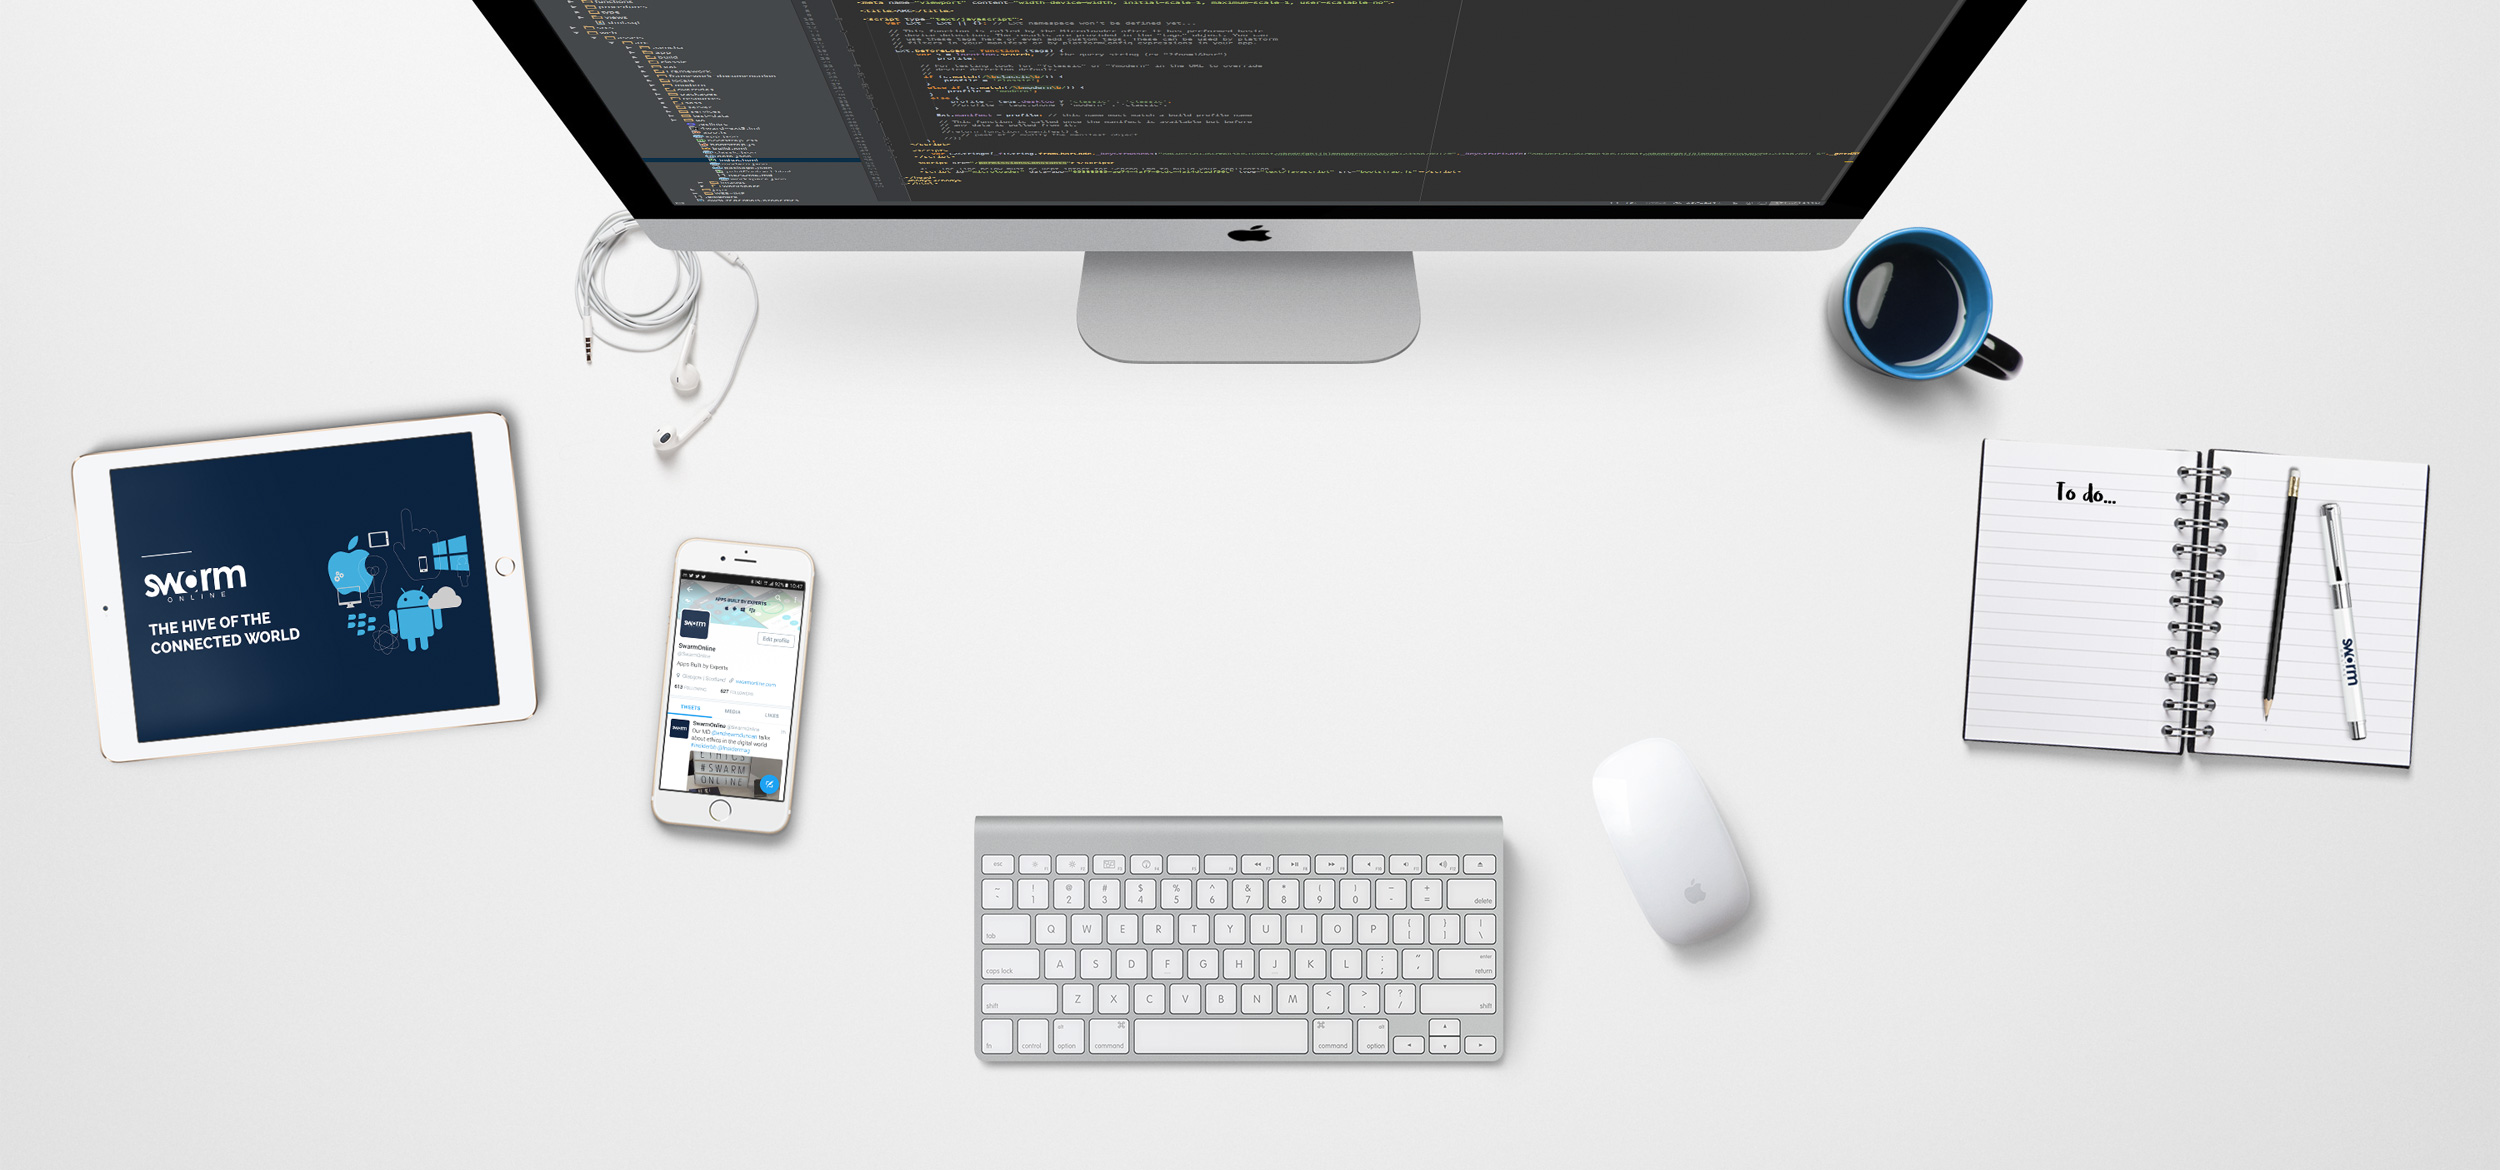 Mac devices for application development